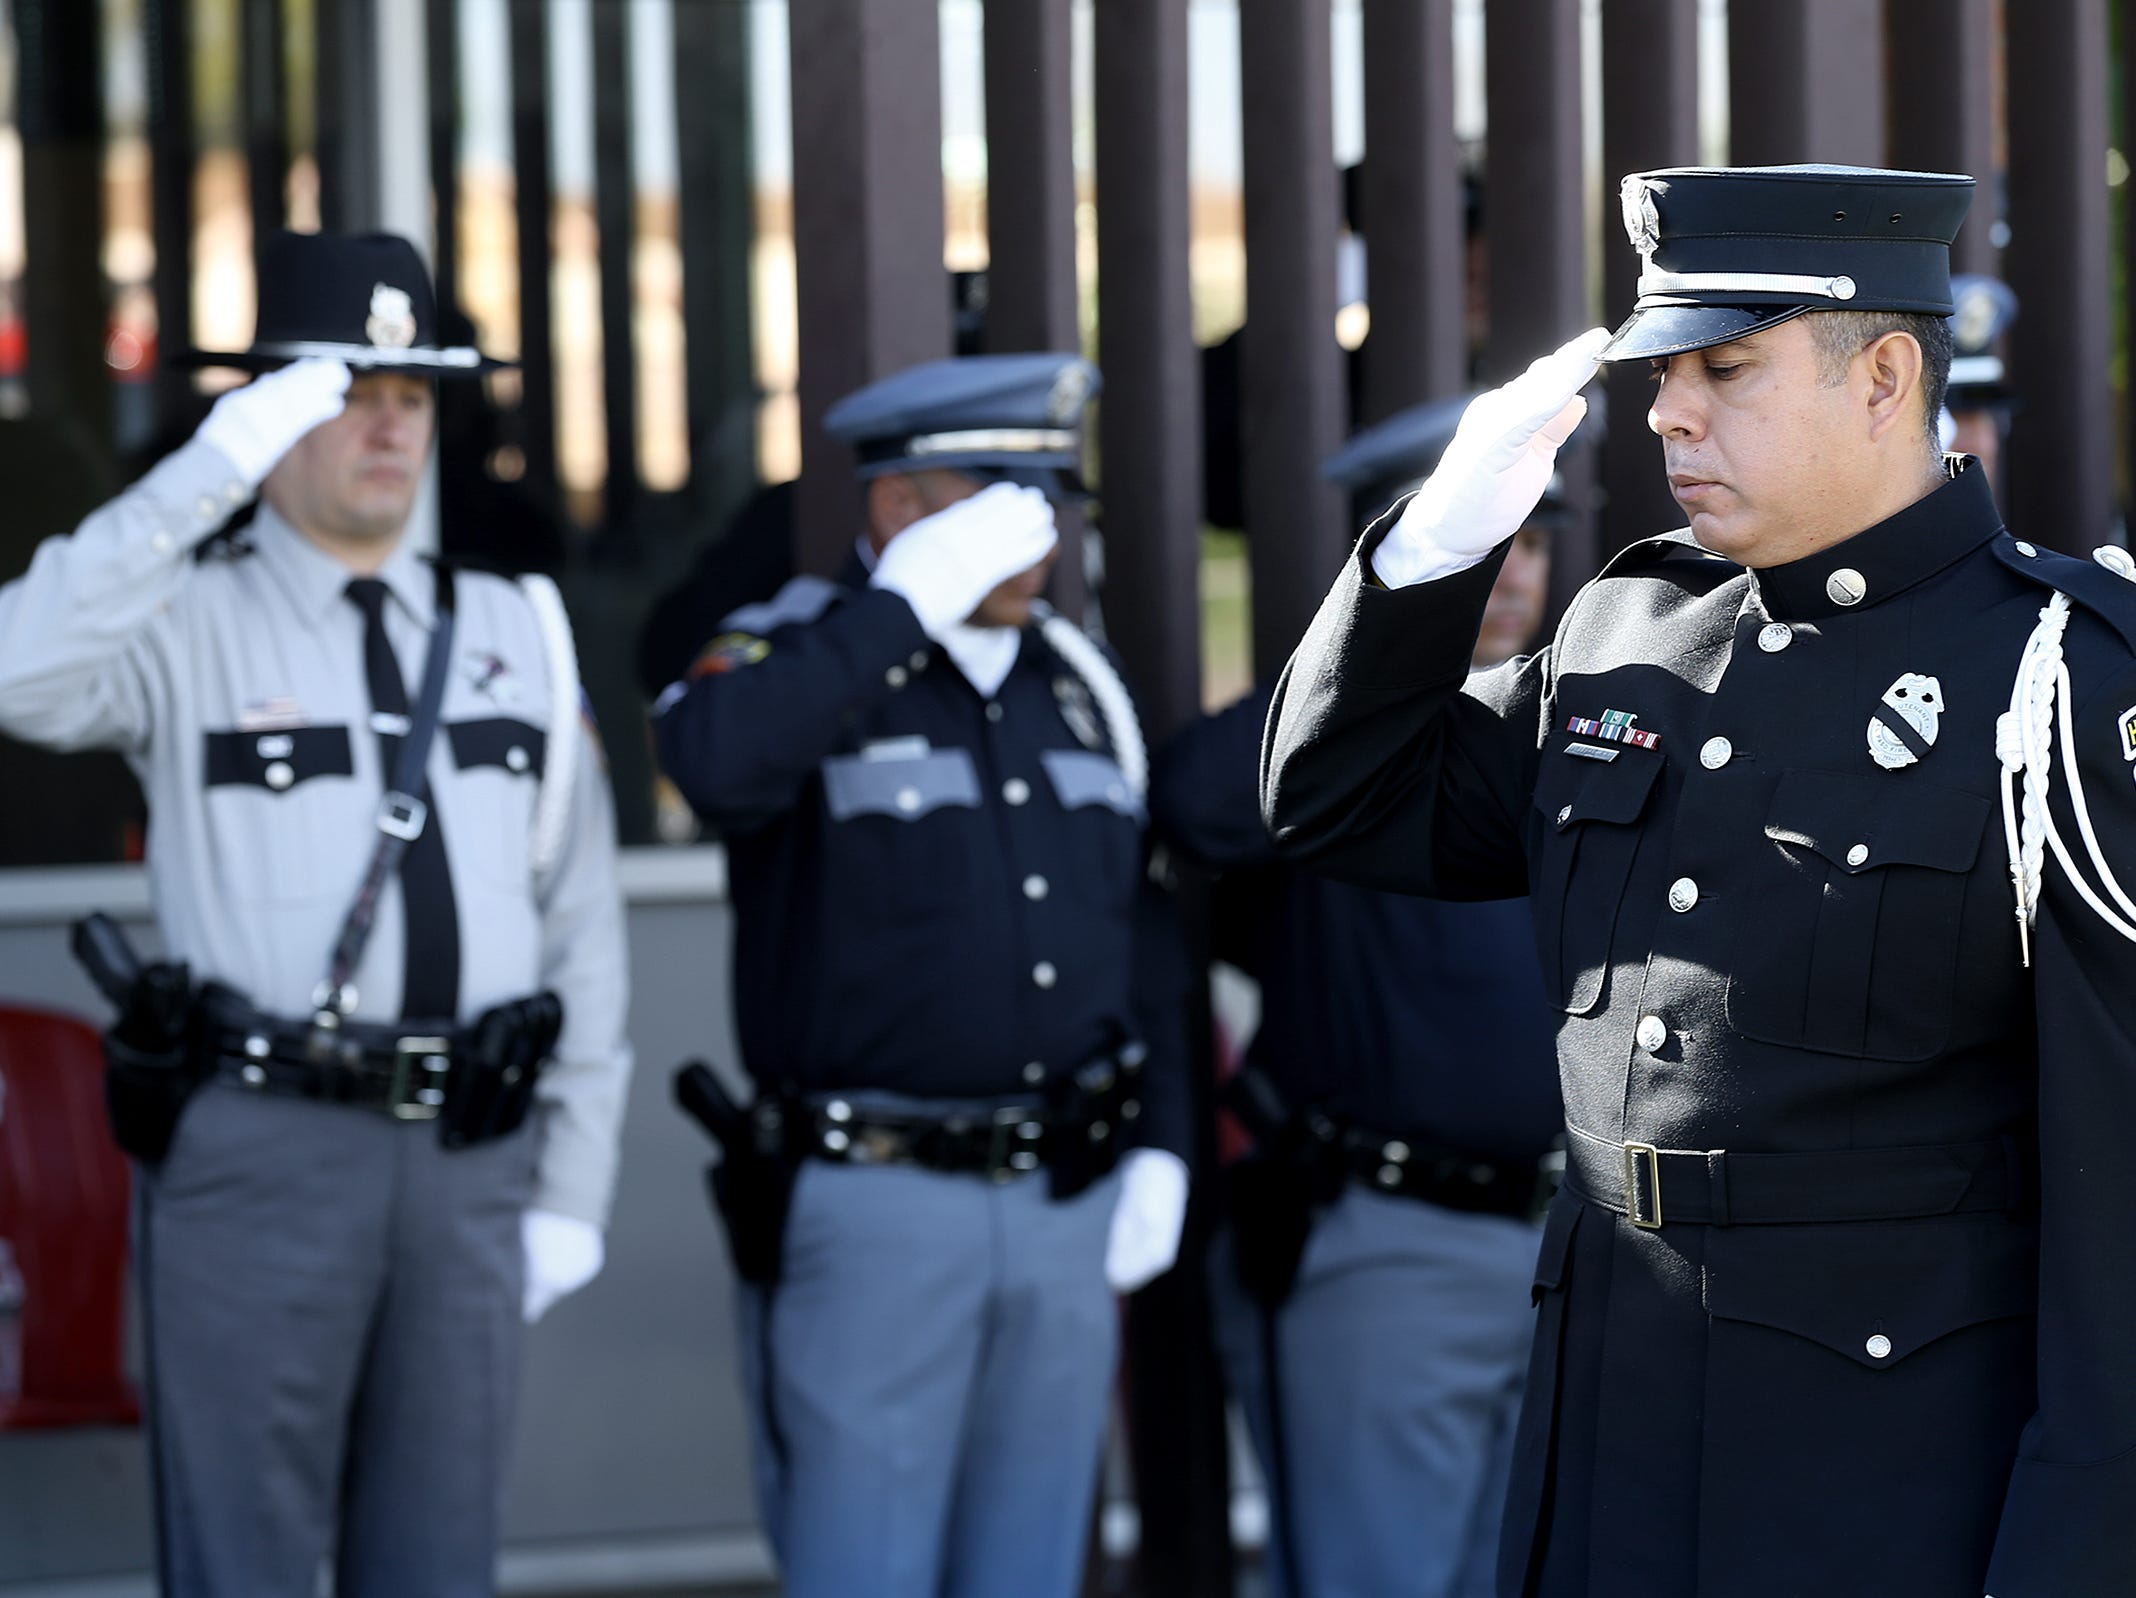 A member of the El Paso Fire Department Honor Guard salutes the 9/11 memorial at Fire Station 18 during the 9/11 Memorial Ceremony Tuesday.